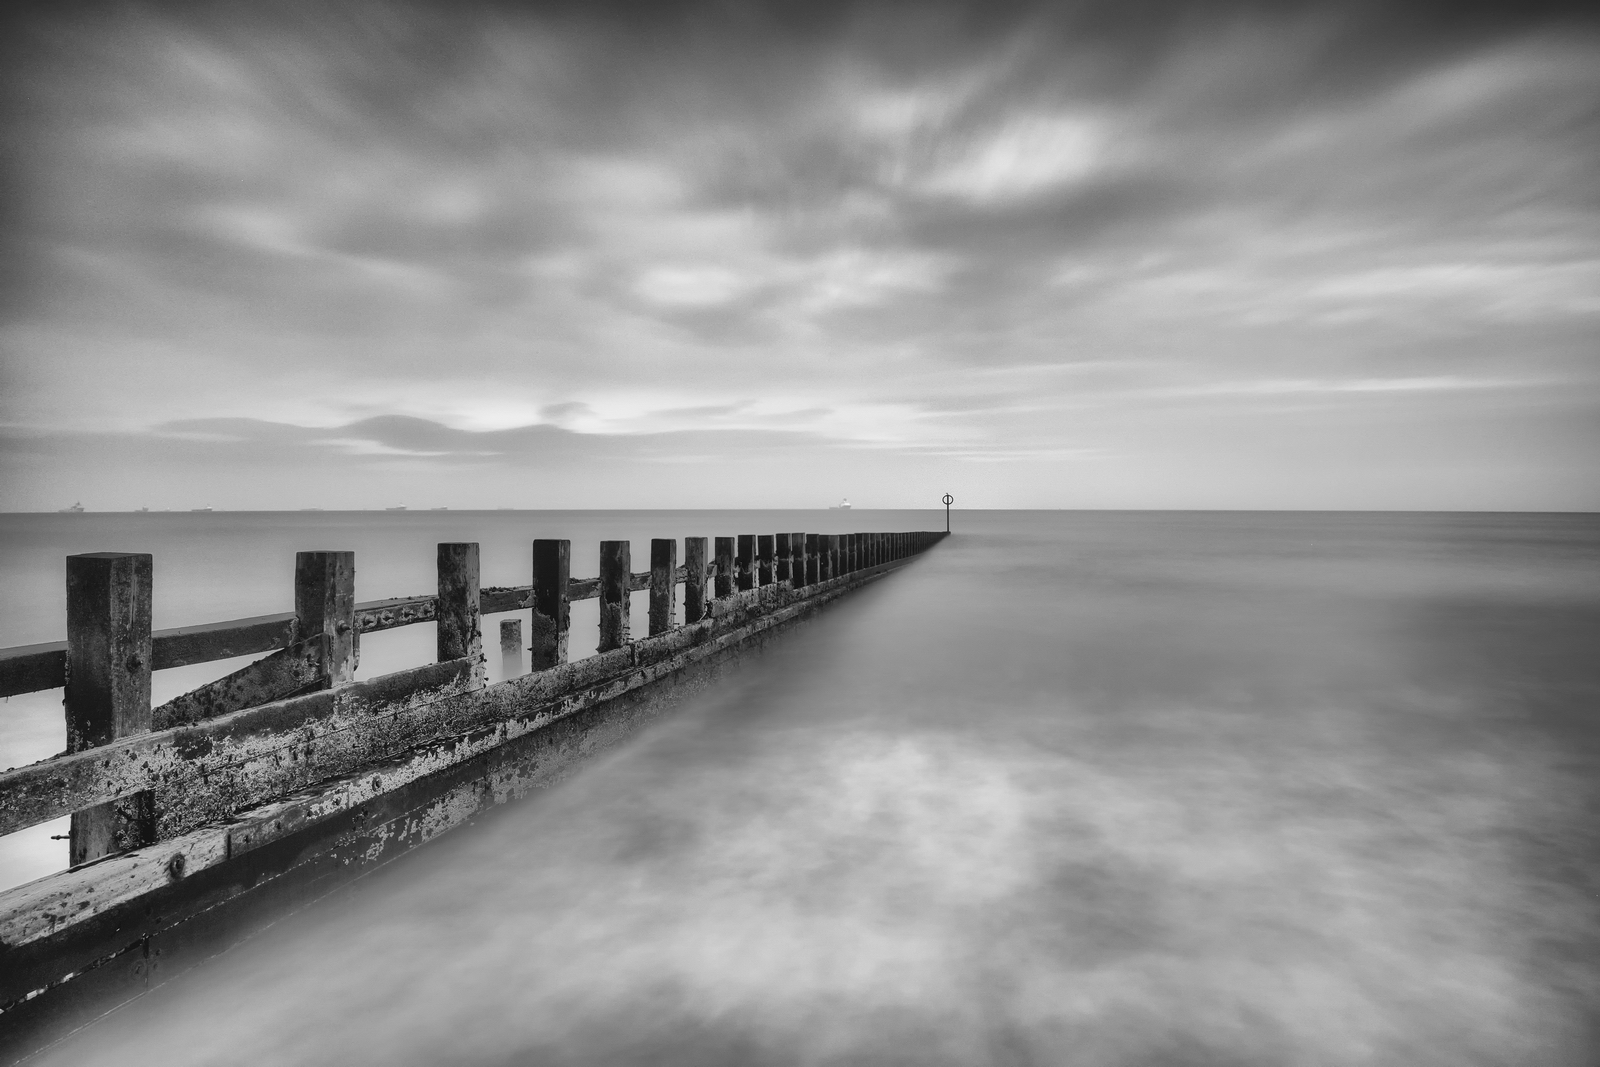 Aberdeen Breakwater – The best gift for santa claus day? Go for a walk with the camera :) Just had a few hours off work. Weather typically English. Cloudy, rain showers and wind, which was ideal weather for photos. Fuji XPro-2, XF 17-55, 60s, f6.5, ISO 200, Hitech ND10 + ND 0,9 Soft